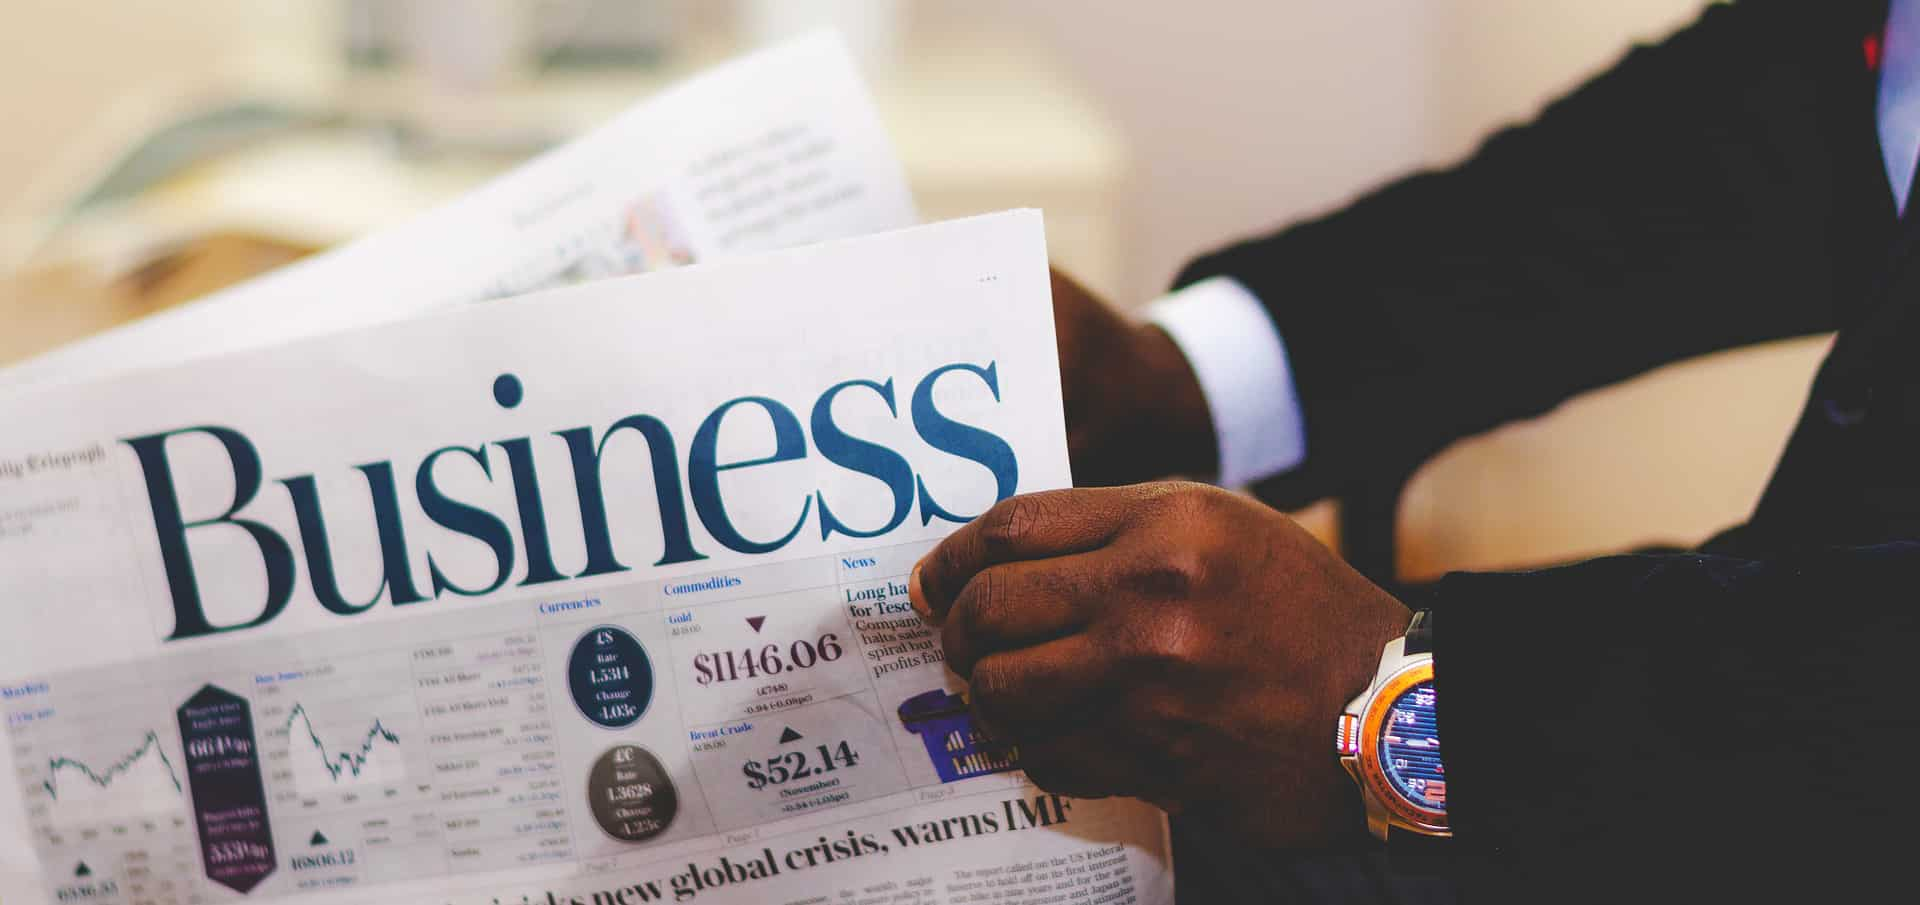 Business News Articles _ How to Keep Readers Coming Back